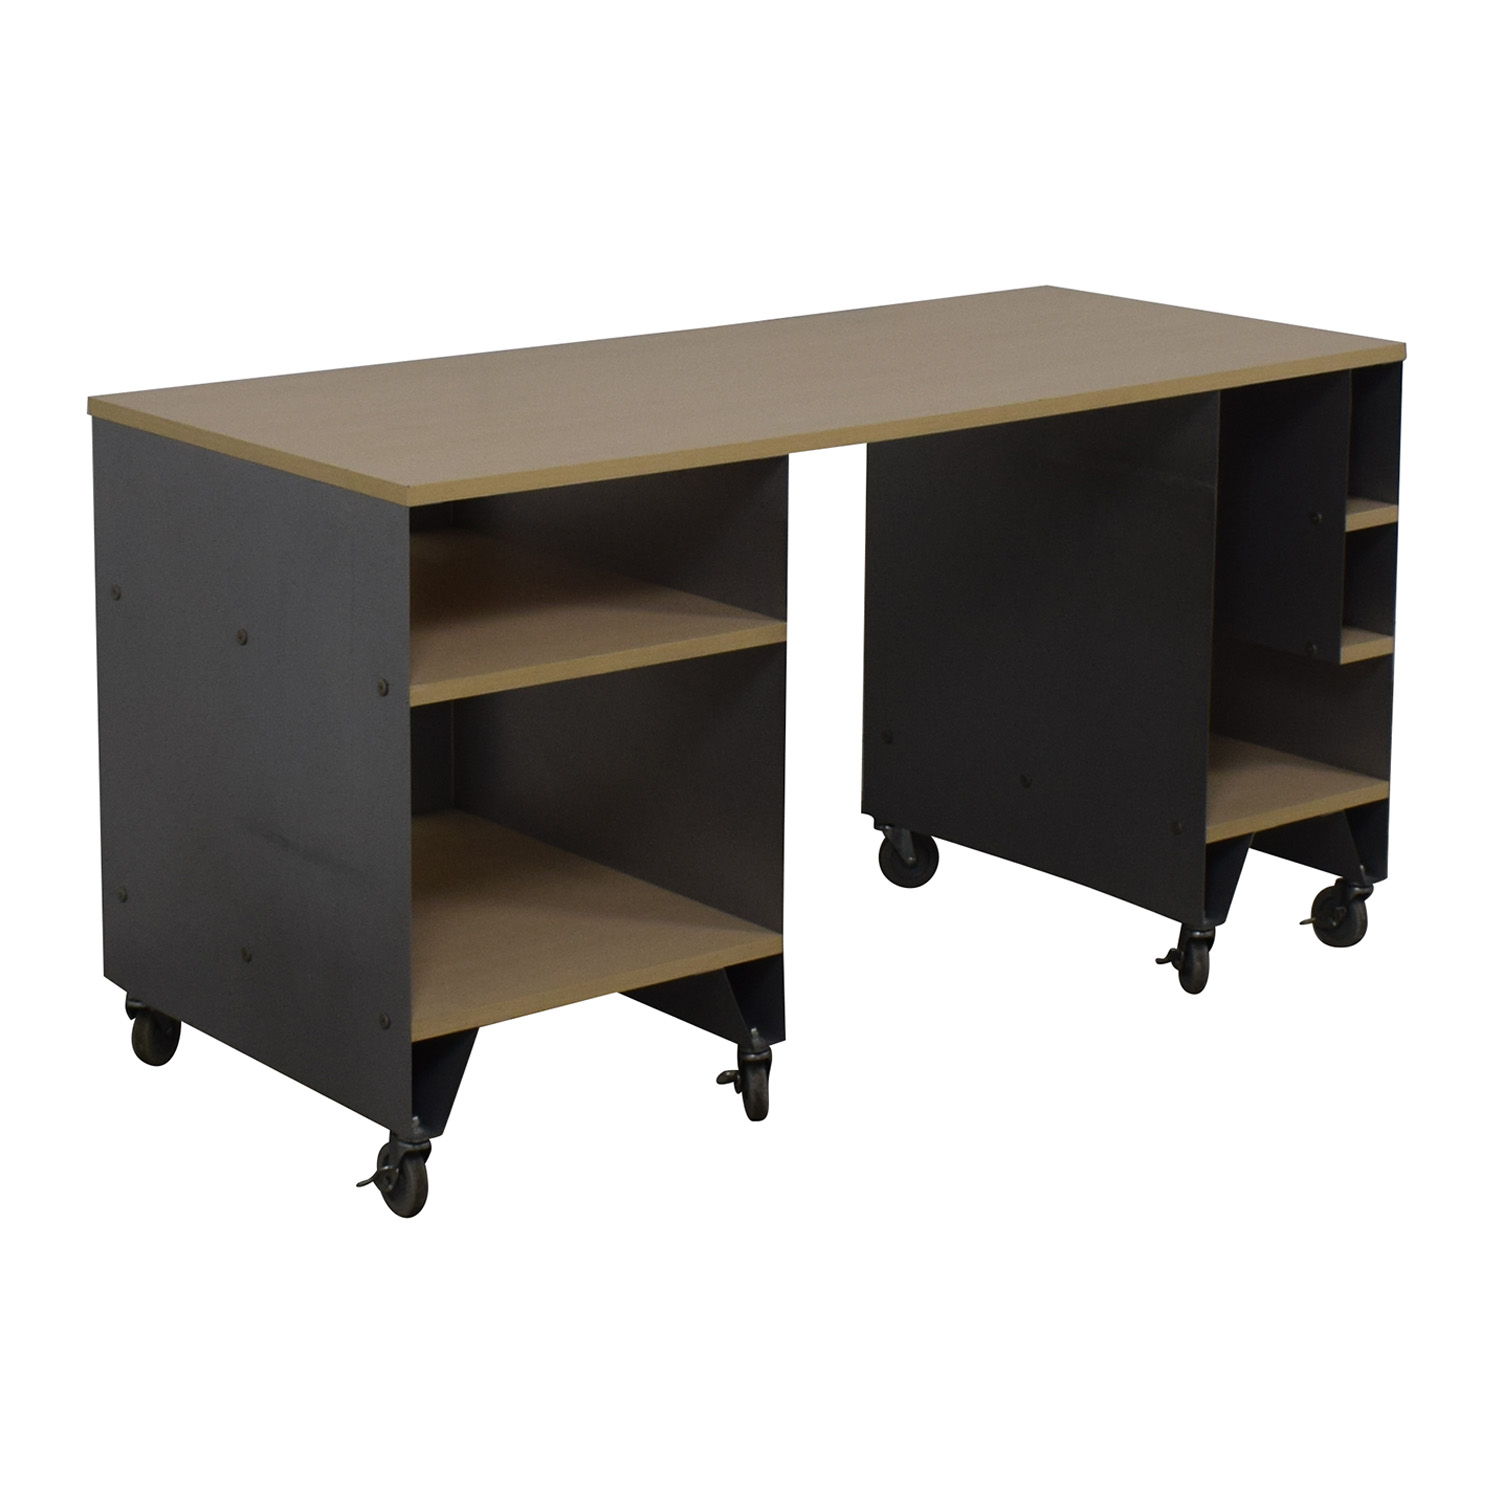 buy The Container Store The Container Store Rolling Desk online